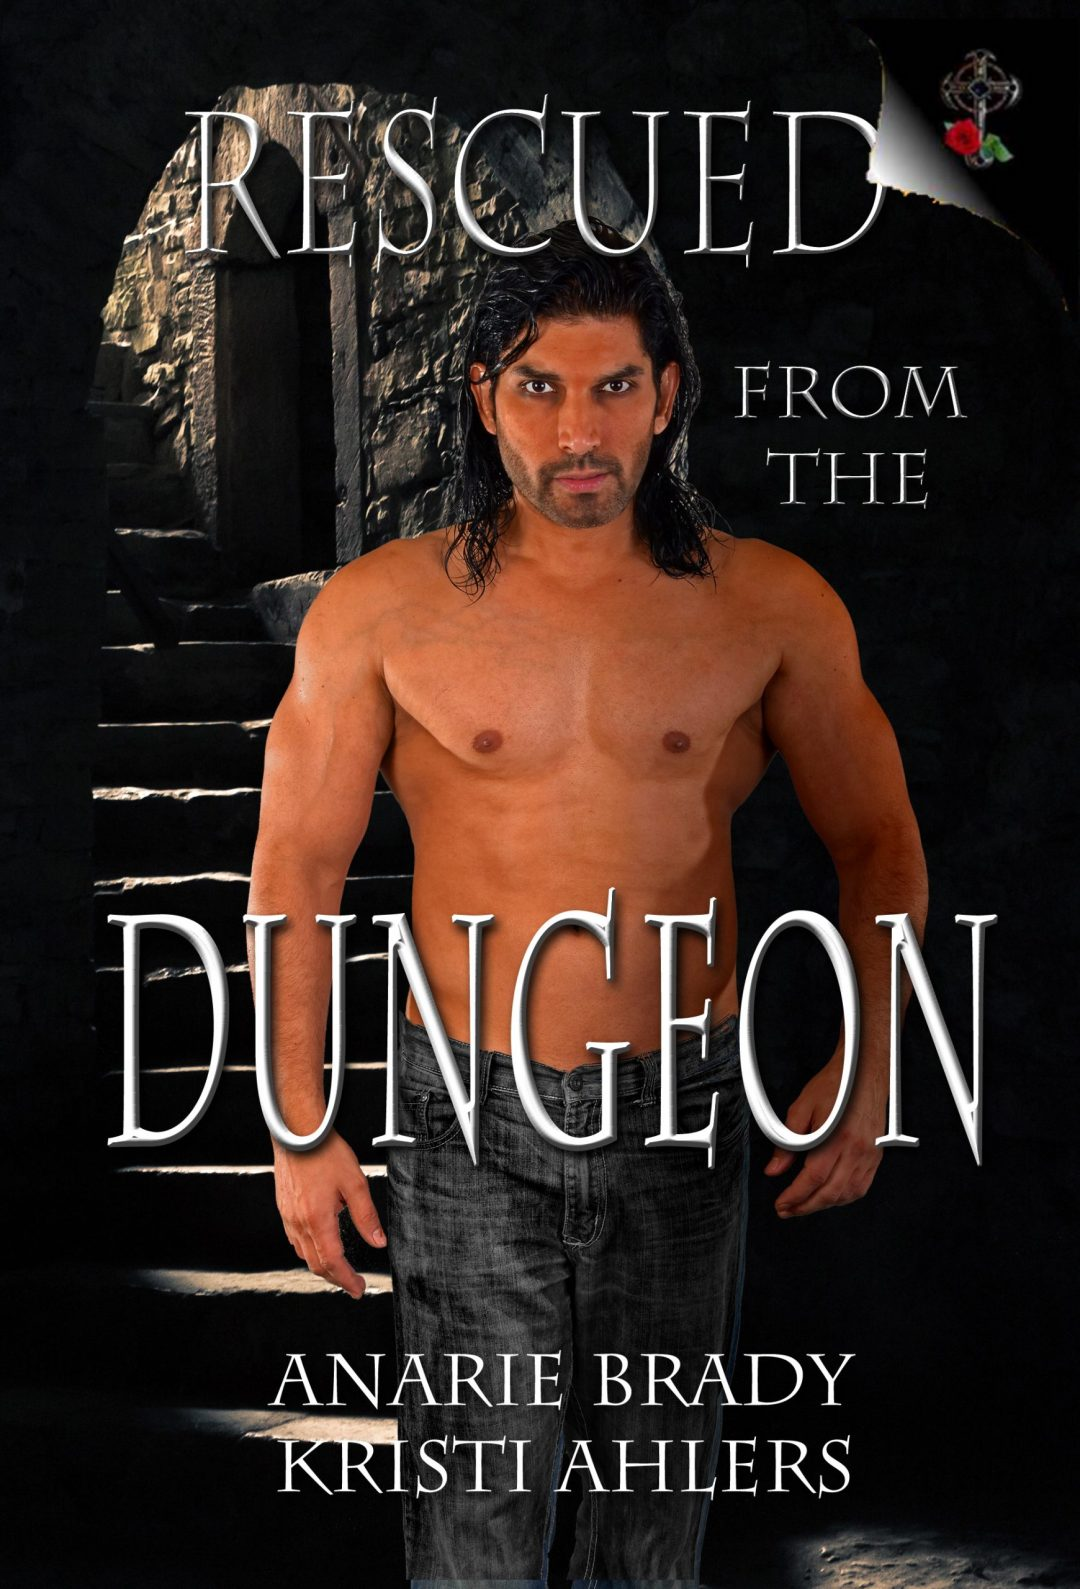 Rescued from the Dungeon - Anthology